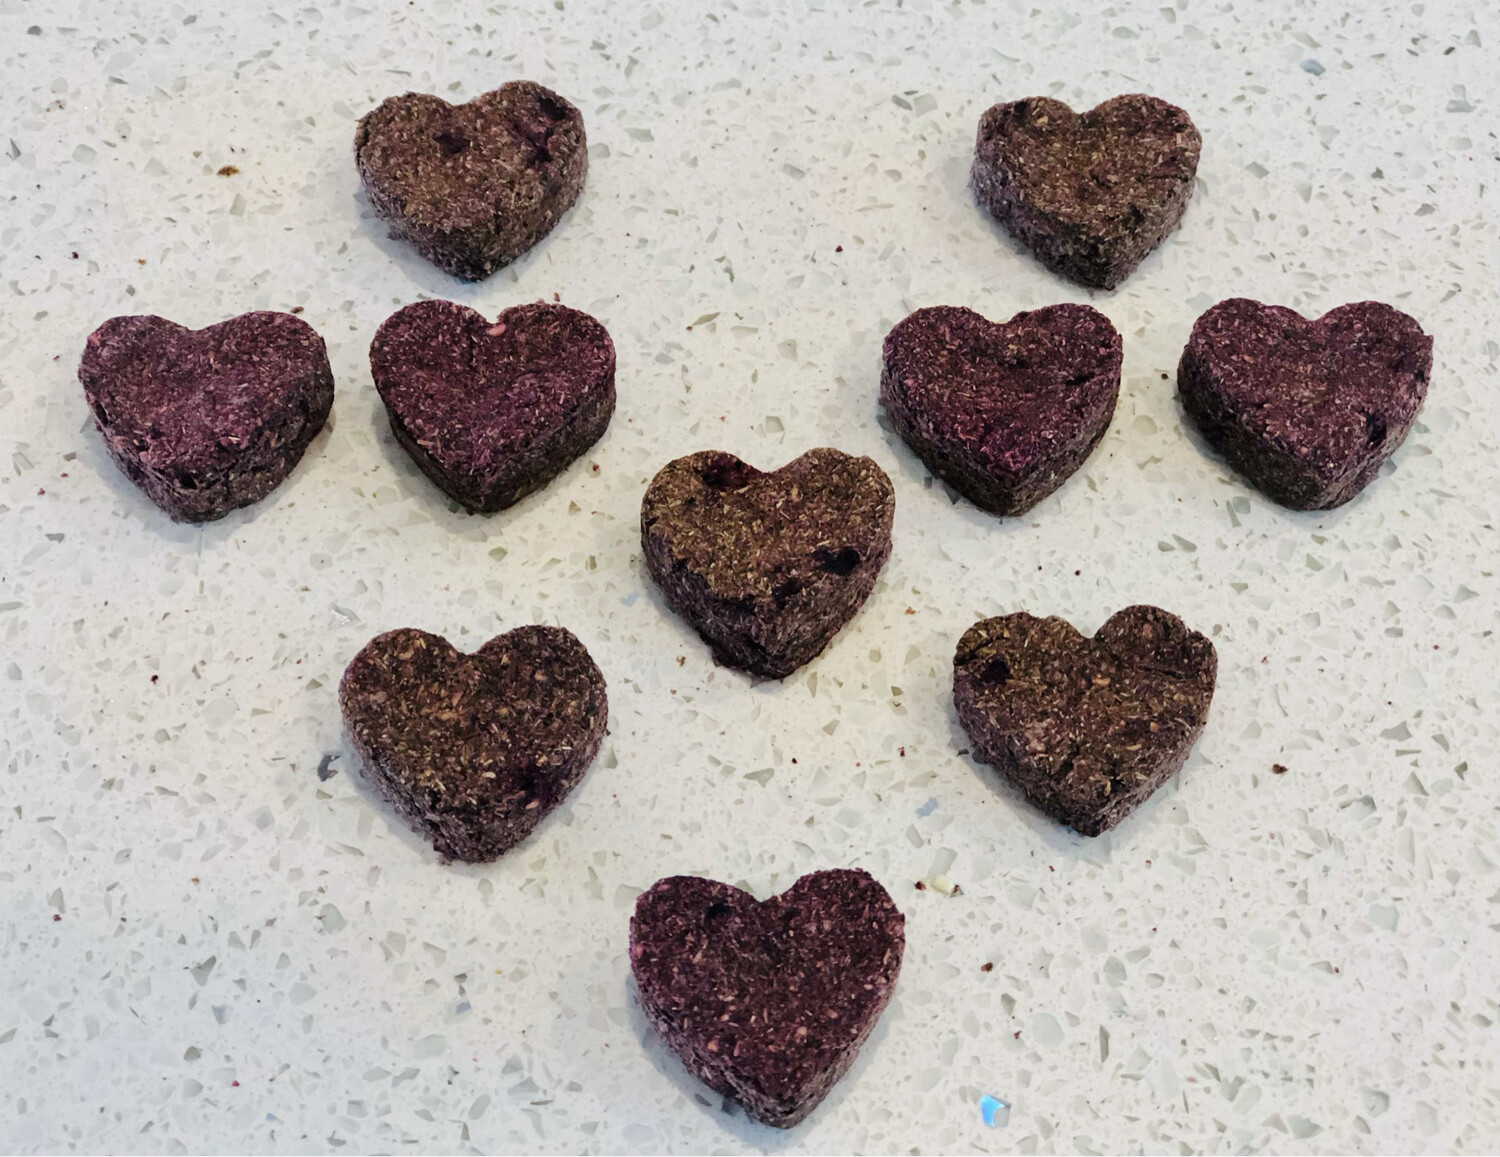 Heart Cookies **NEW PRODUCT**